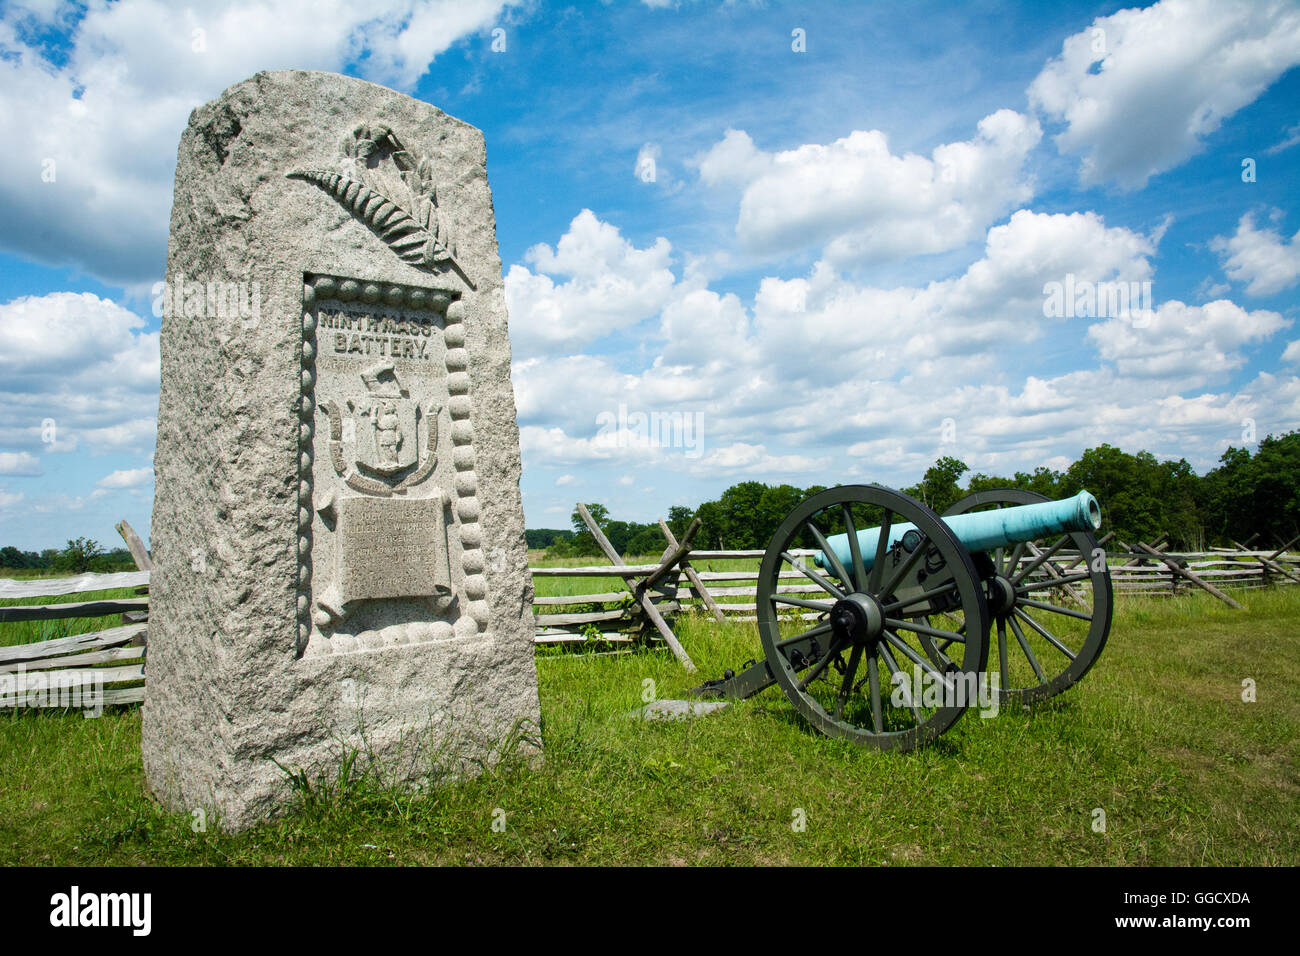 One of three 9th Massachusetts Battery monuments, surrounded by cannons, on the Gettysburg National Military Park - Stock Image